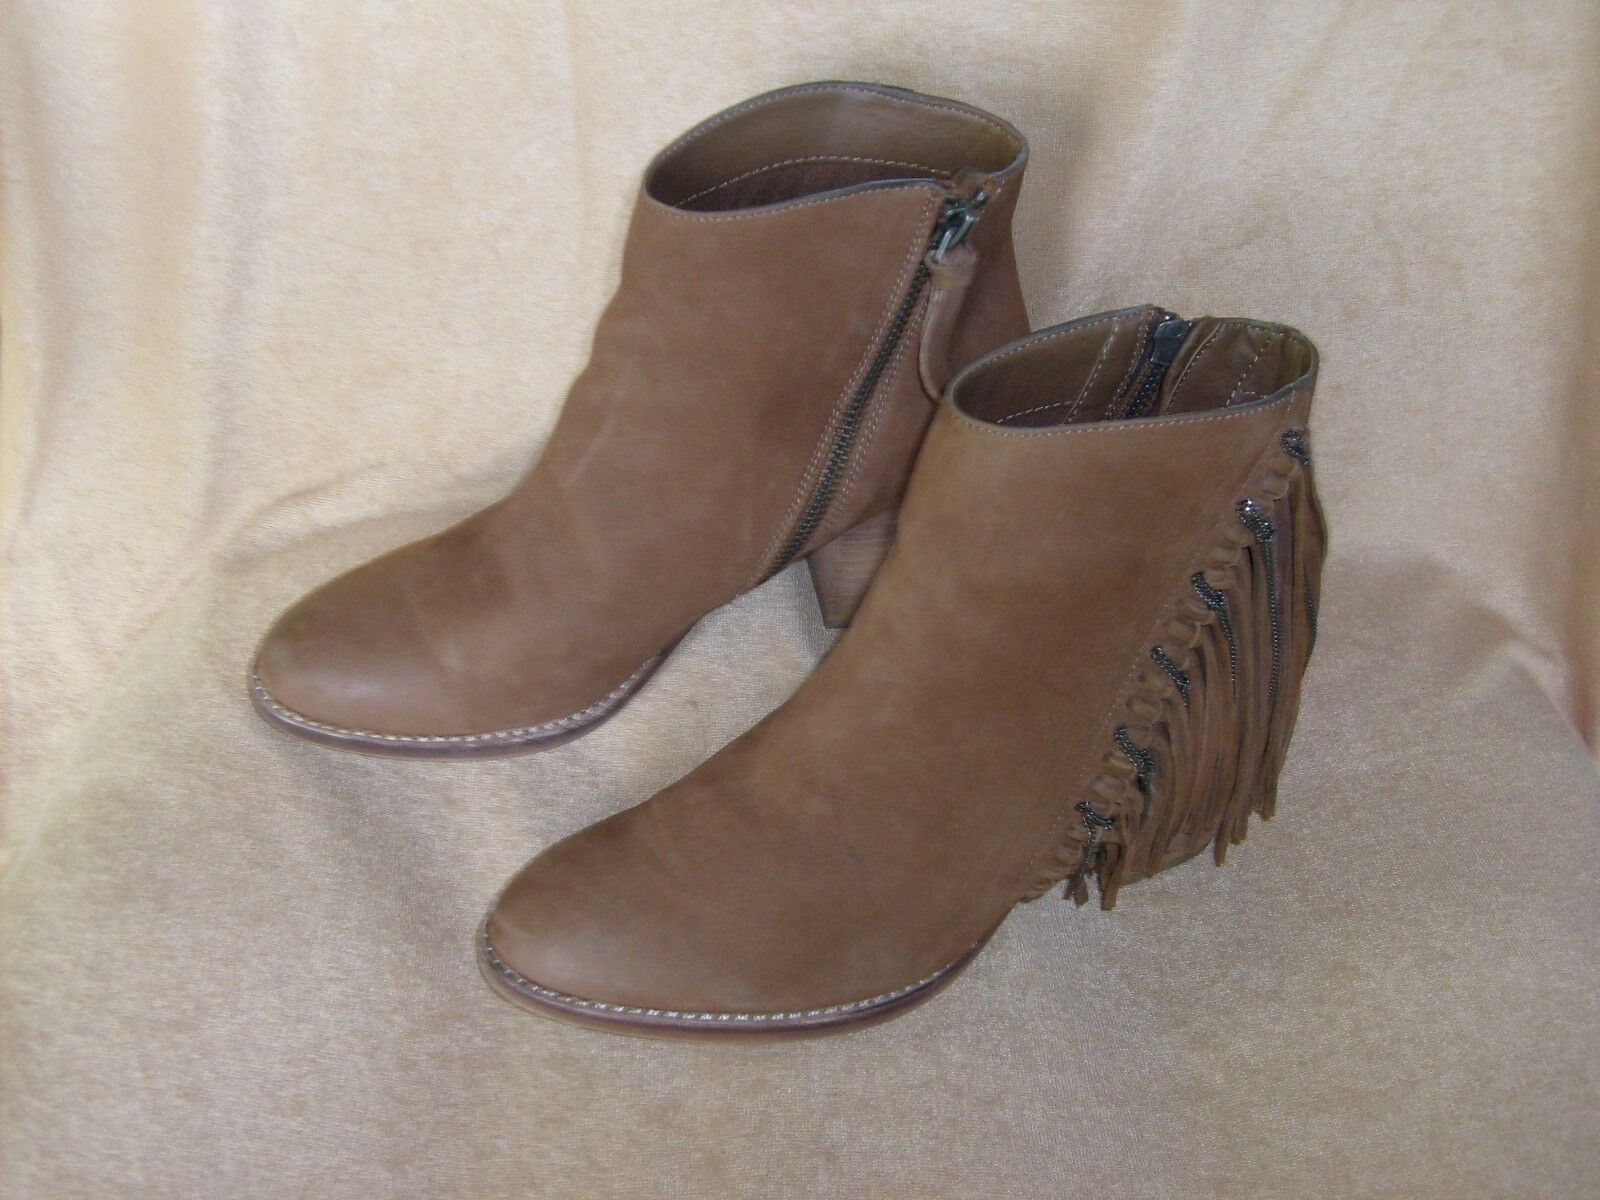 Dolci Vita Brown Suede Fringed Ankle Boots-Sz 6.5-FREE SHIPPING